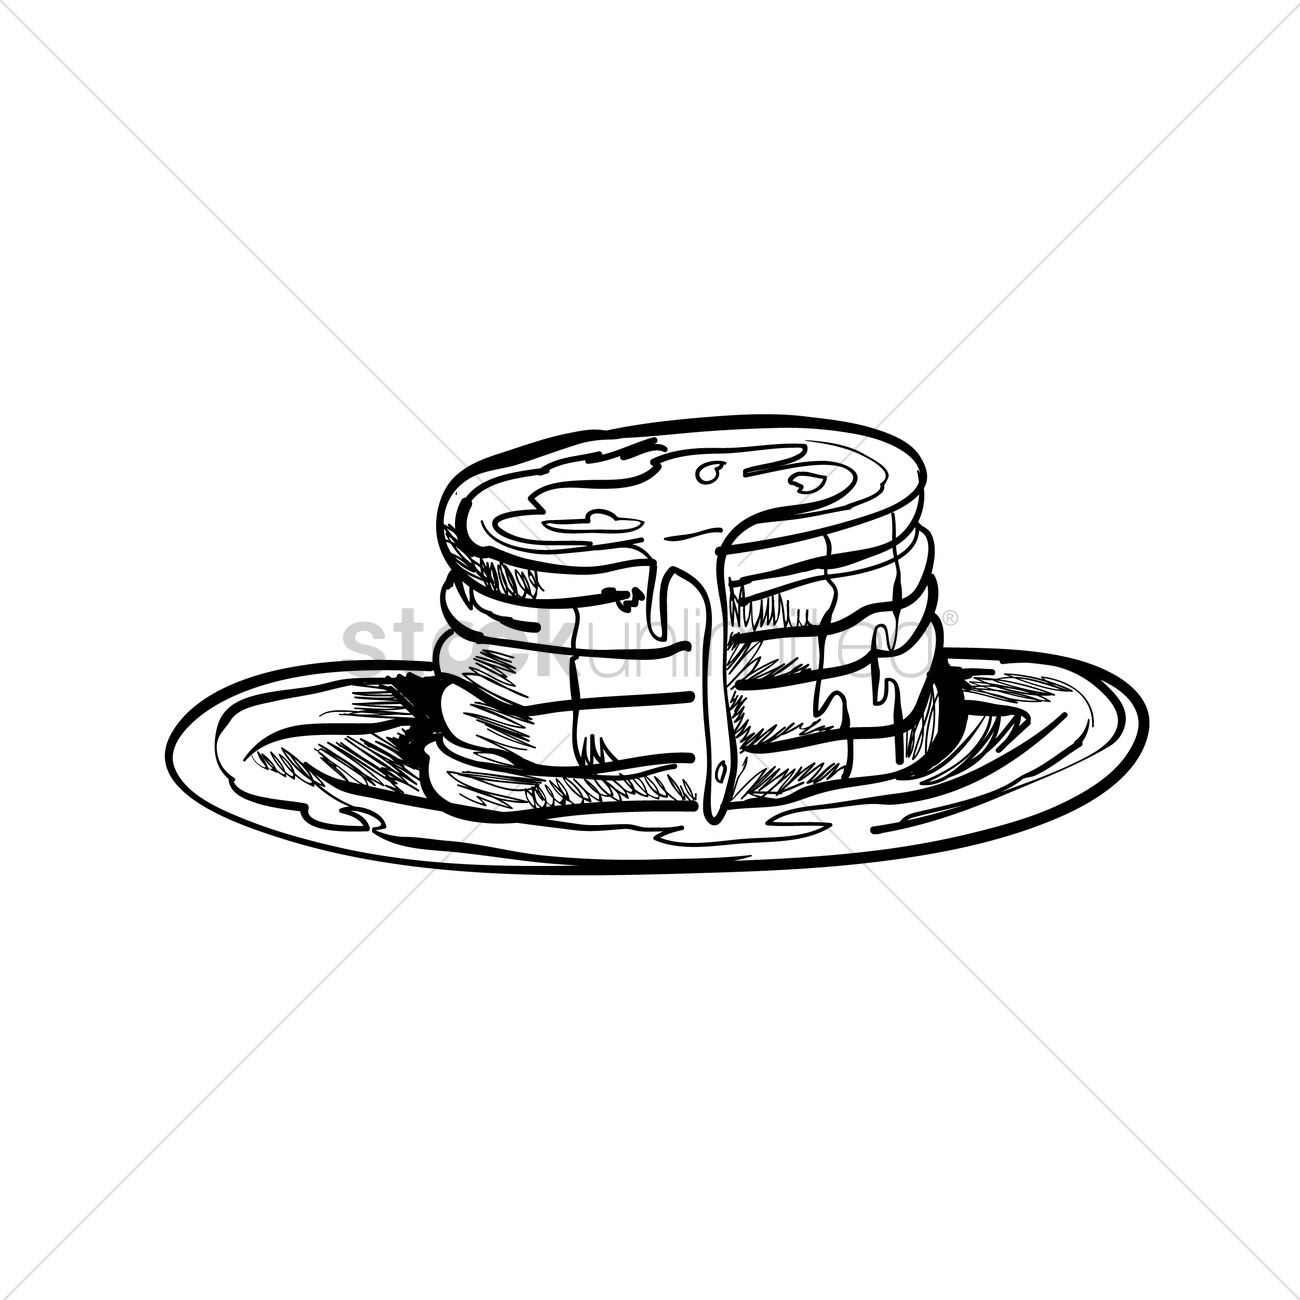 1300x1300 Maple Syrup Drizzled On Pancakes Vector Image